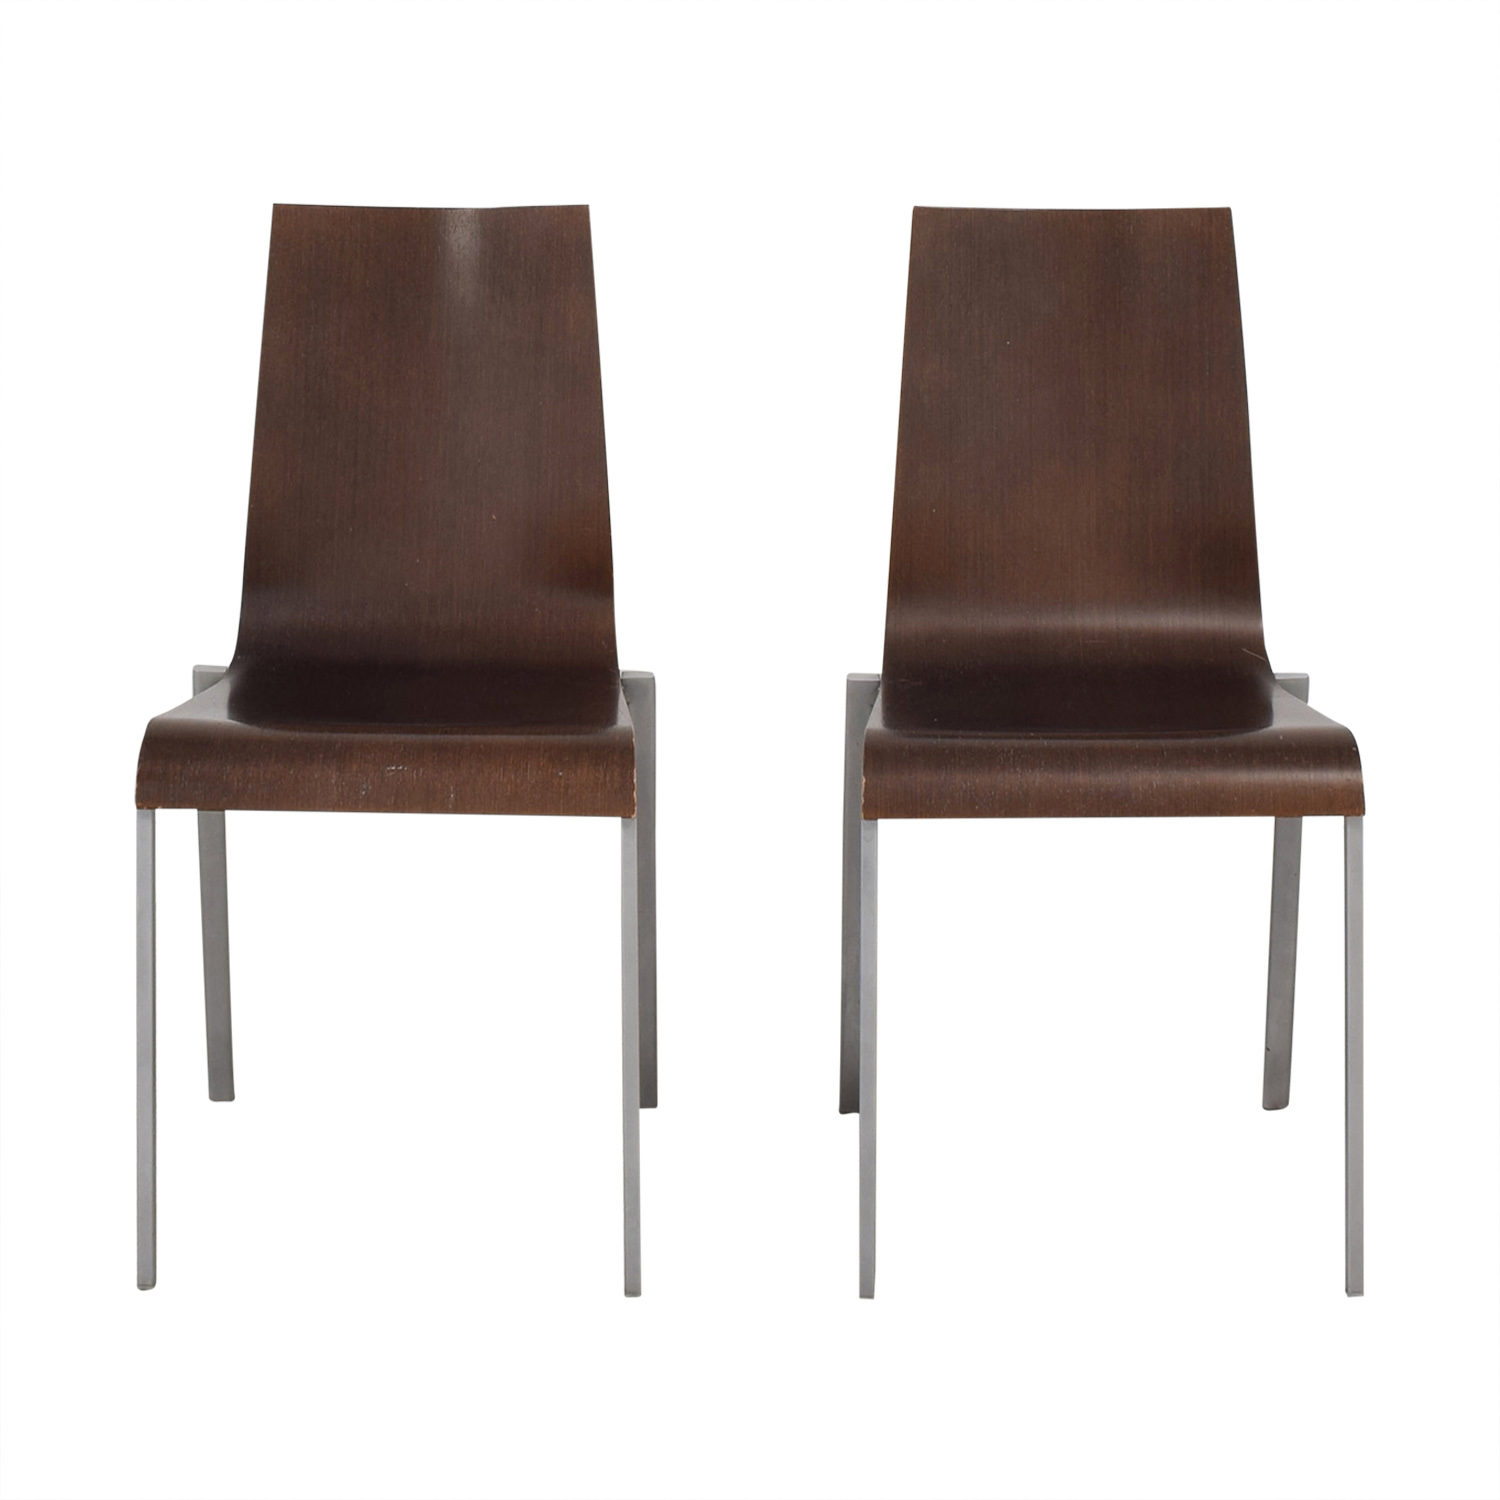 shop Minotti Minotti Wooden Chairs online